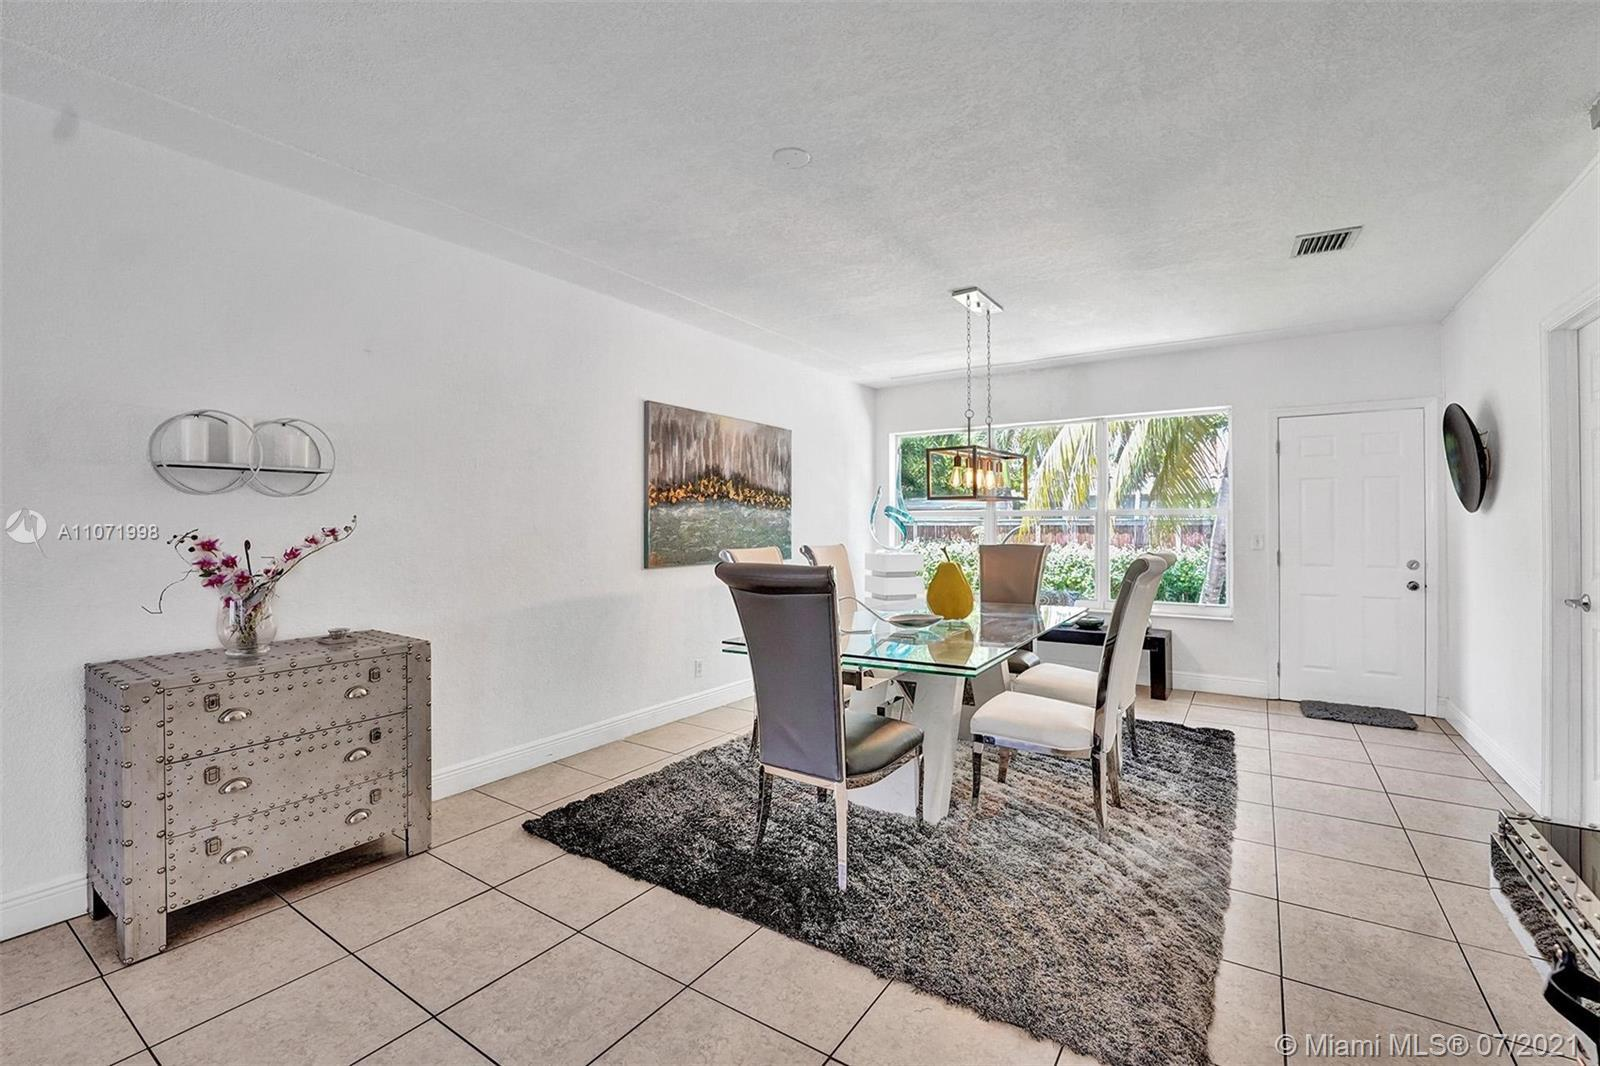 Wonderful close-knit charming beachside community in the coveted Town of Surfside. Superb family to